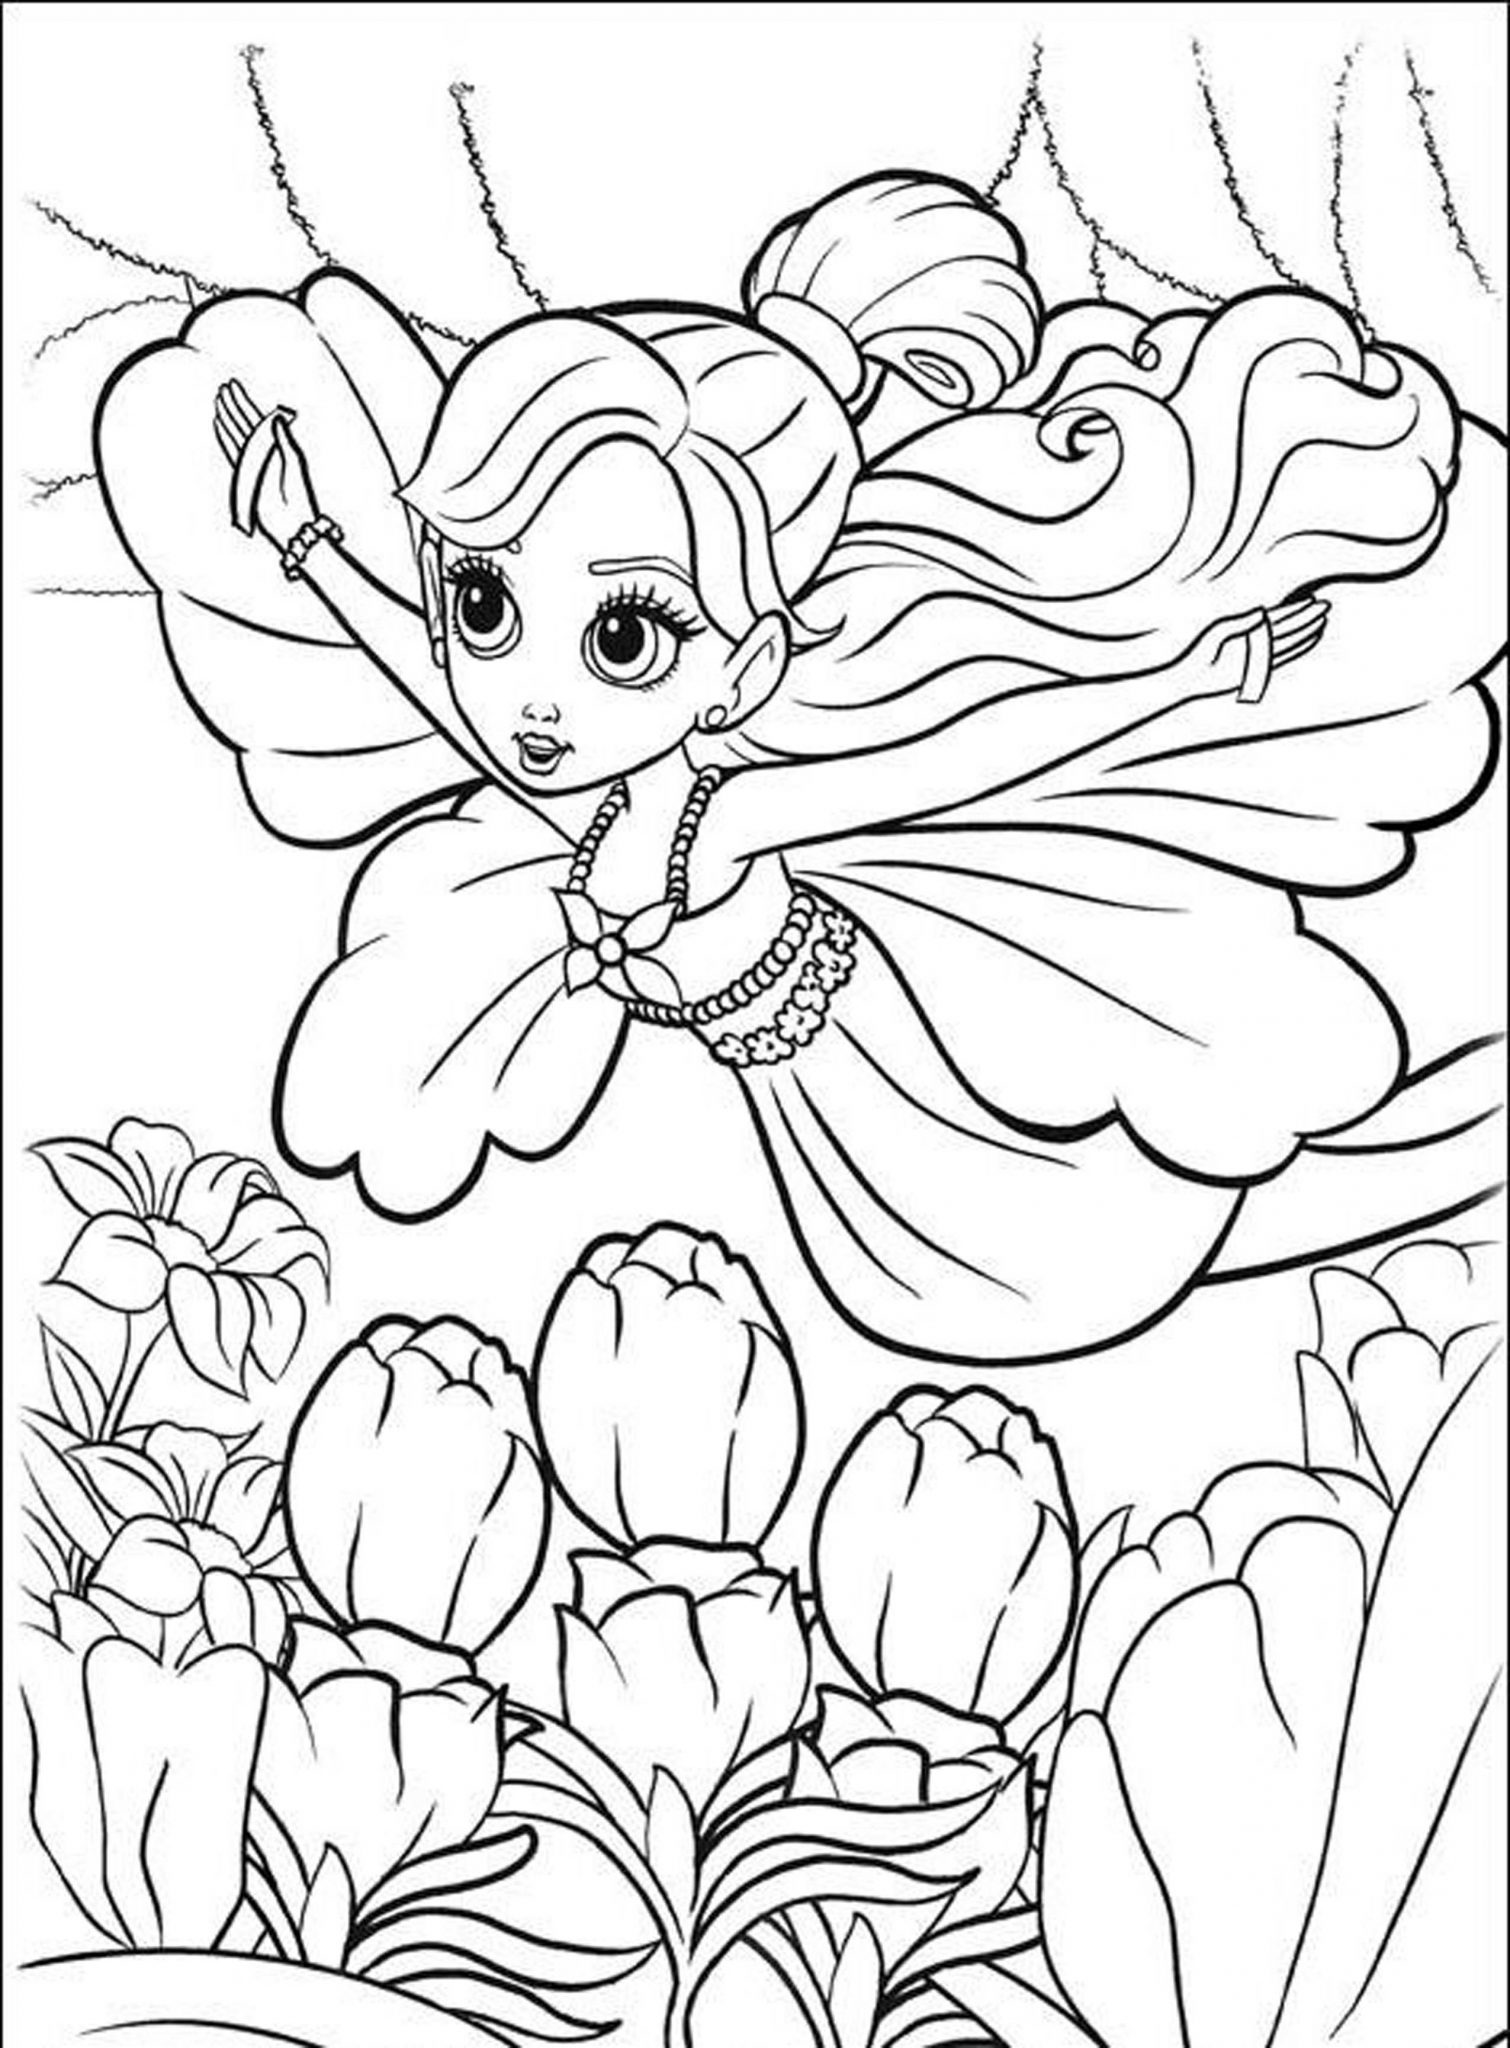 coloring books for girls detailed coloring pages for girls at getcoloringscom books for coloring girls